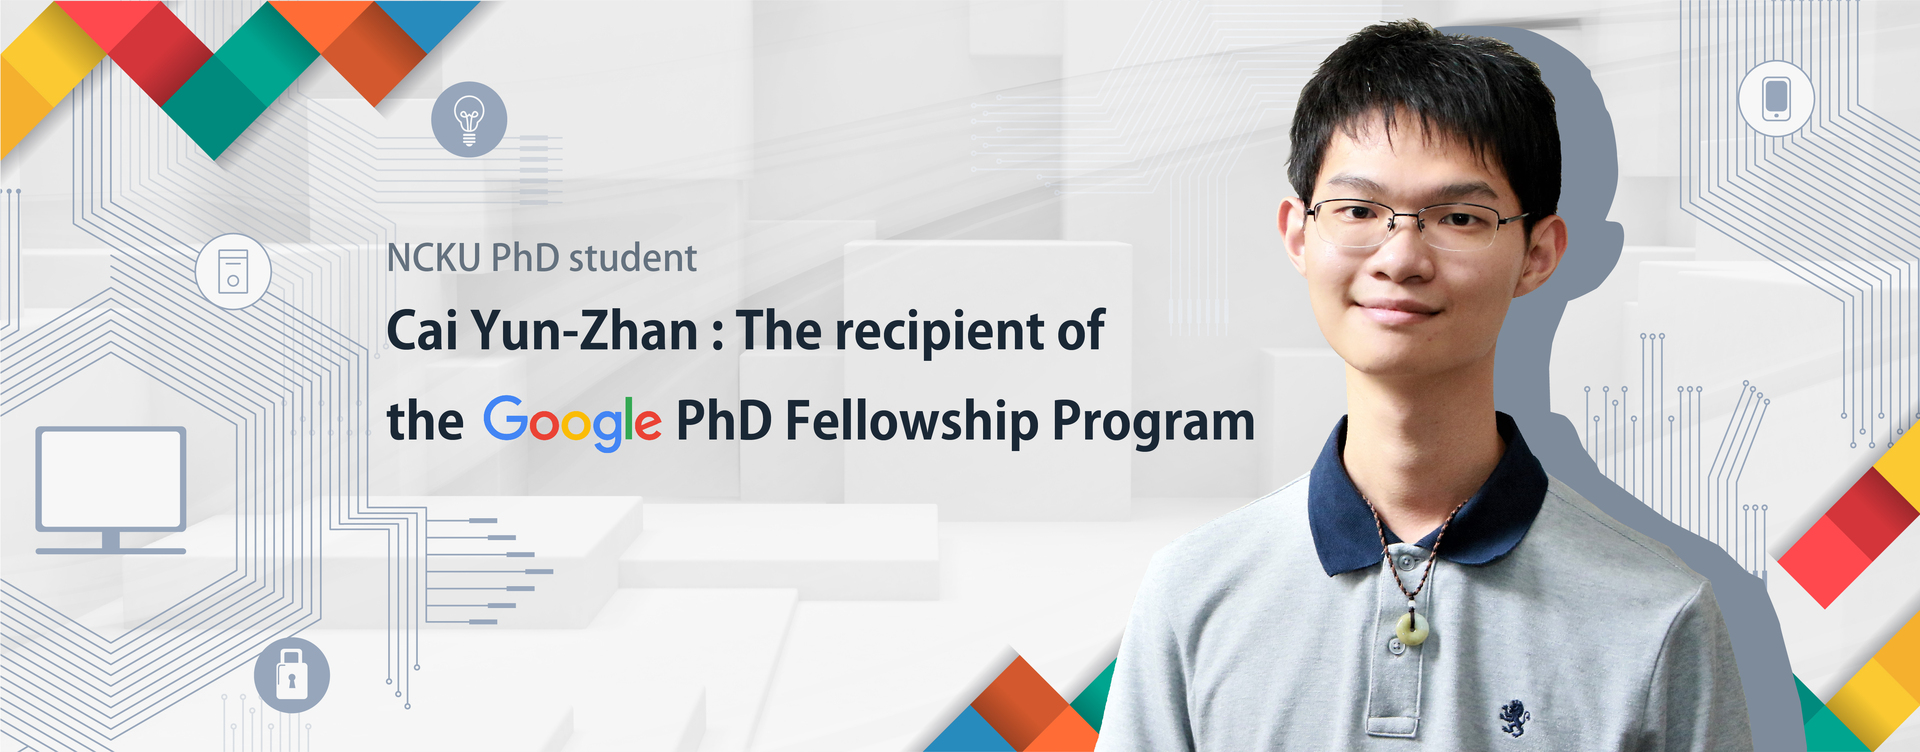 NCKU student is named awardee of the Google PhD Fellowship Program